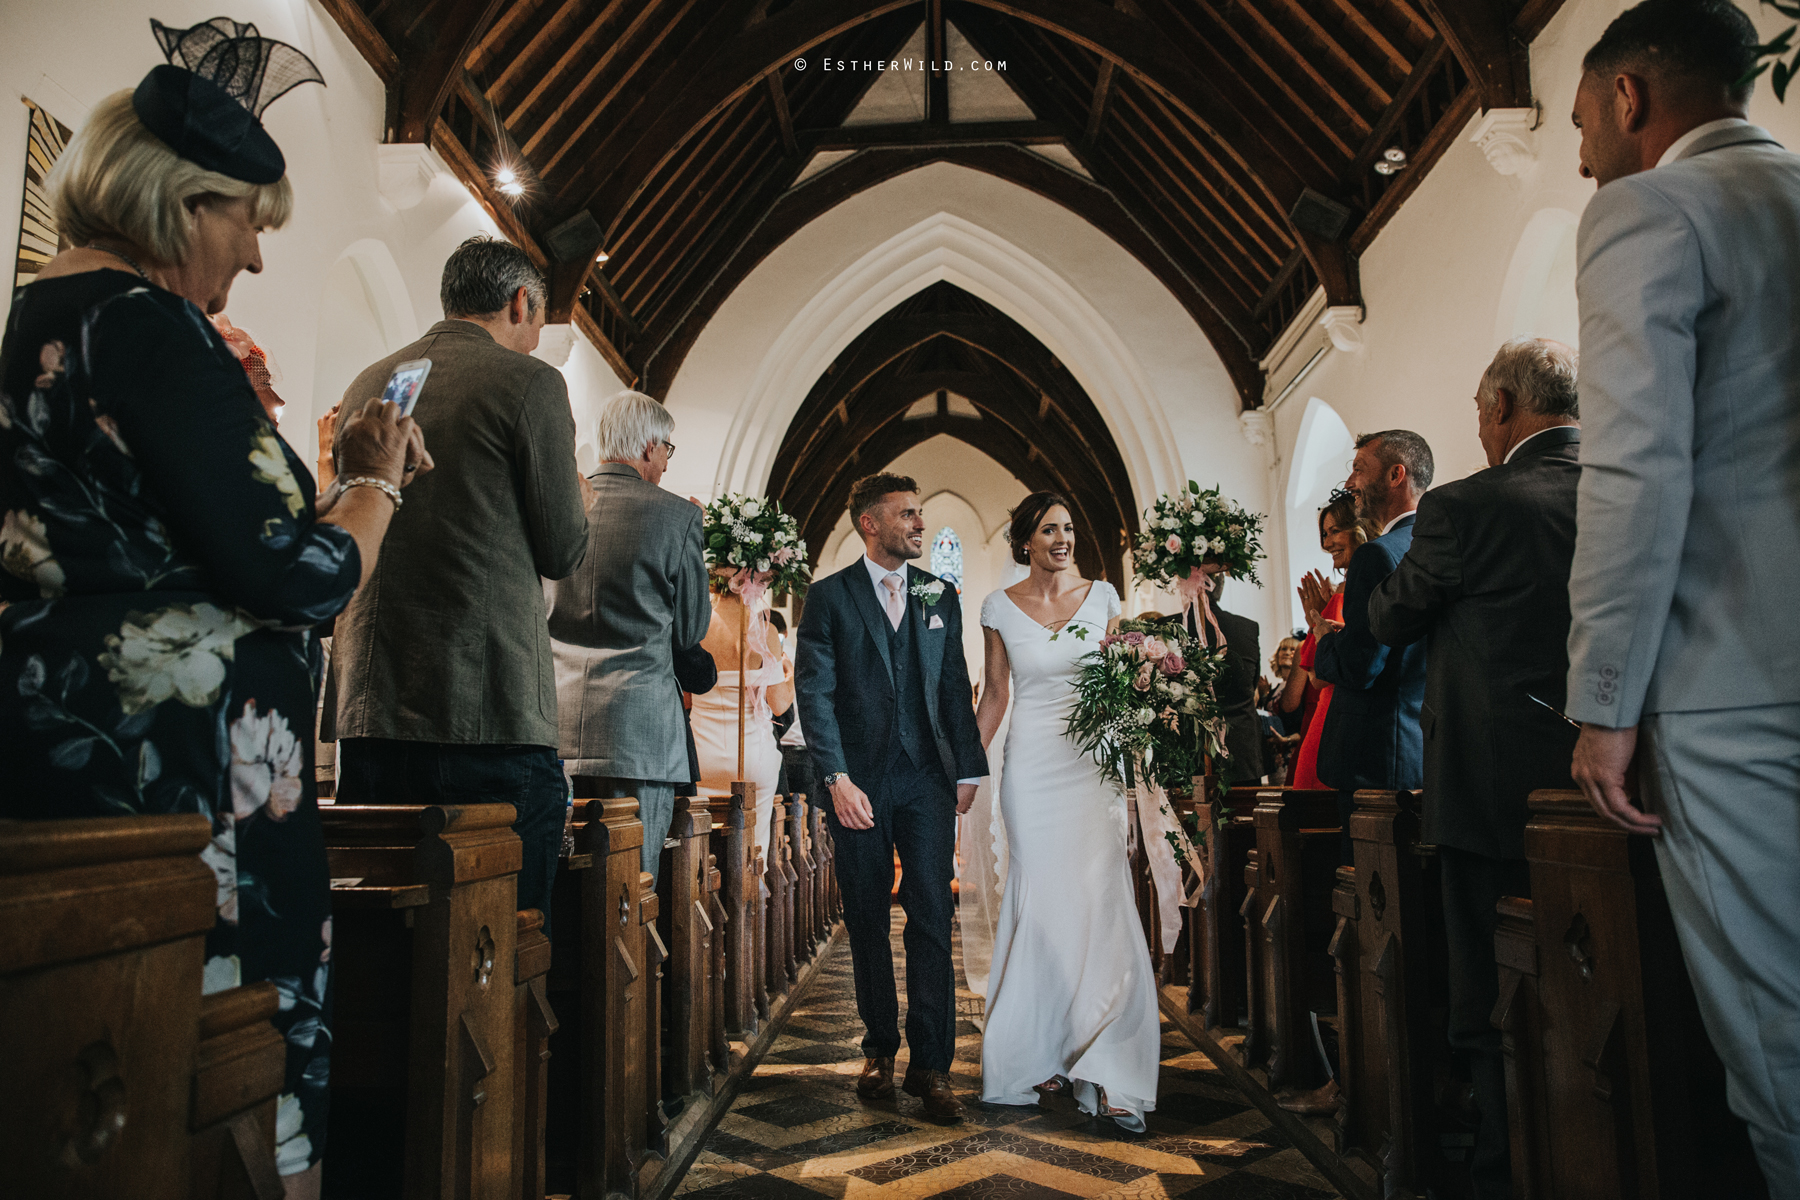 Wootton_Wedding_Copyright_Esther_Wild_Photographer_IMG_1192.jpg